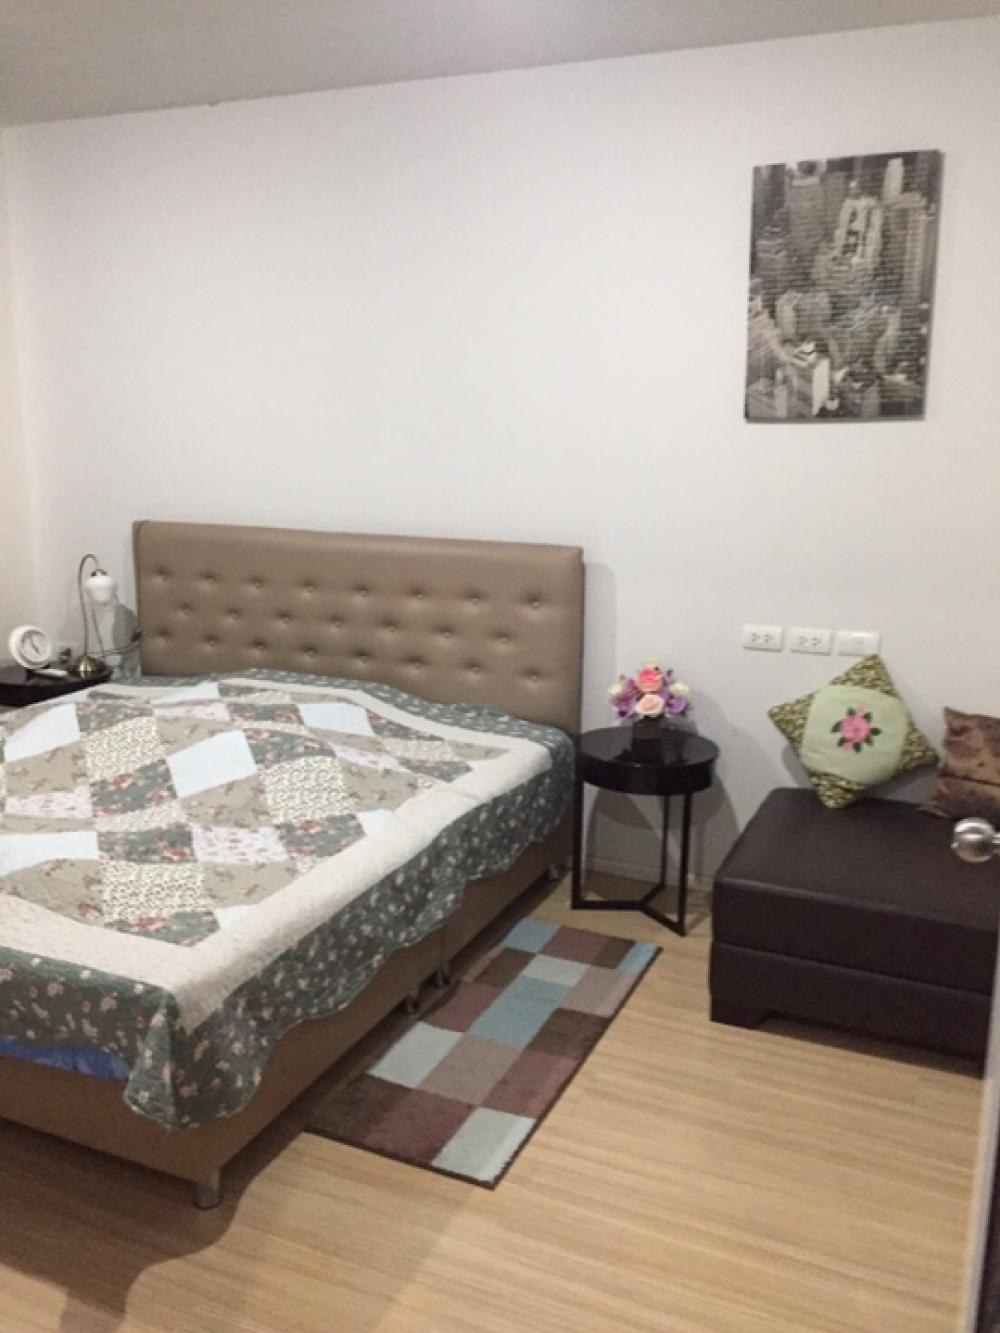 For RentCondoLadprao101, The Mall Bang Kapi : Happy condo for rent, South Building, 7th Floor, Area 78 (66 + 12 parking spaces)